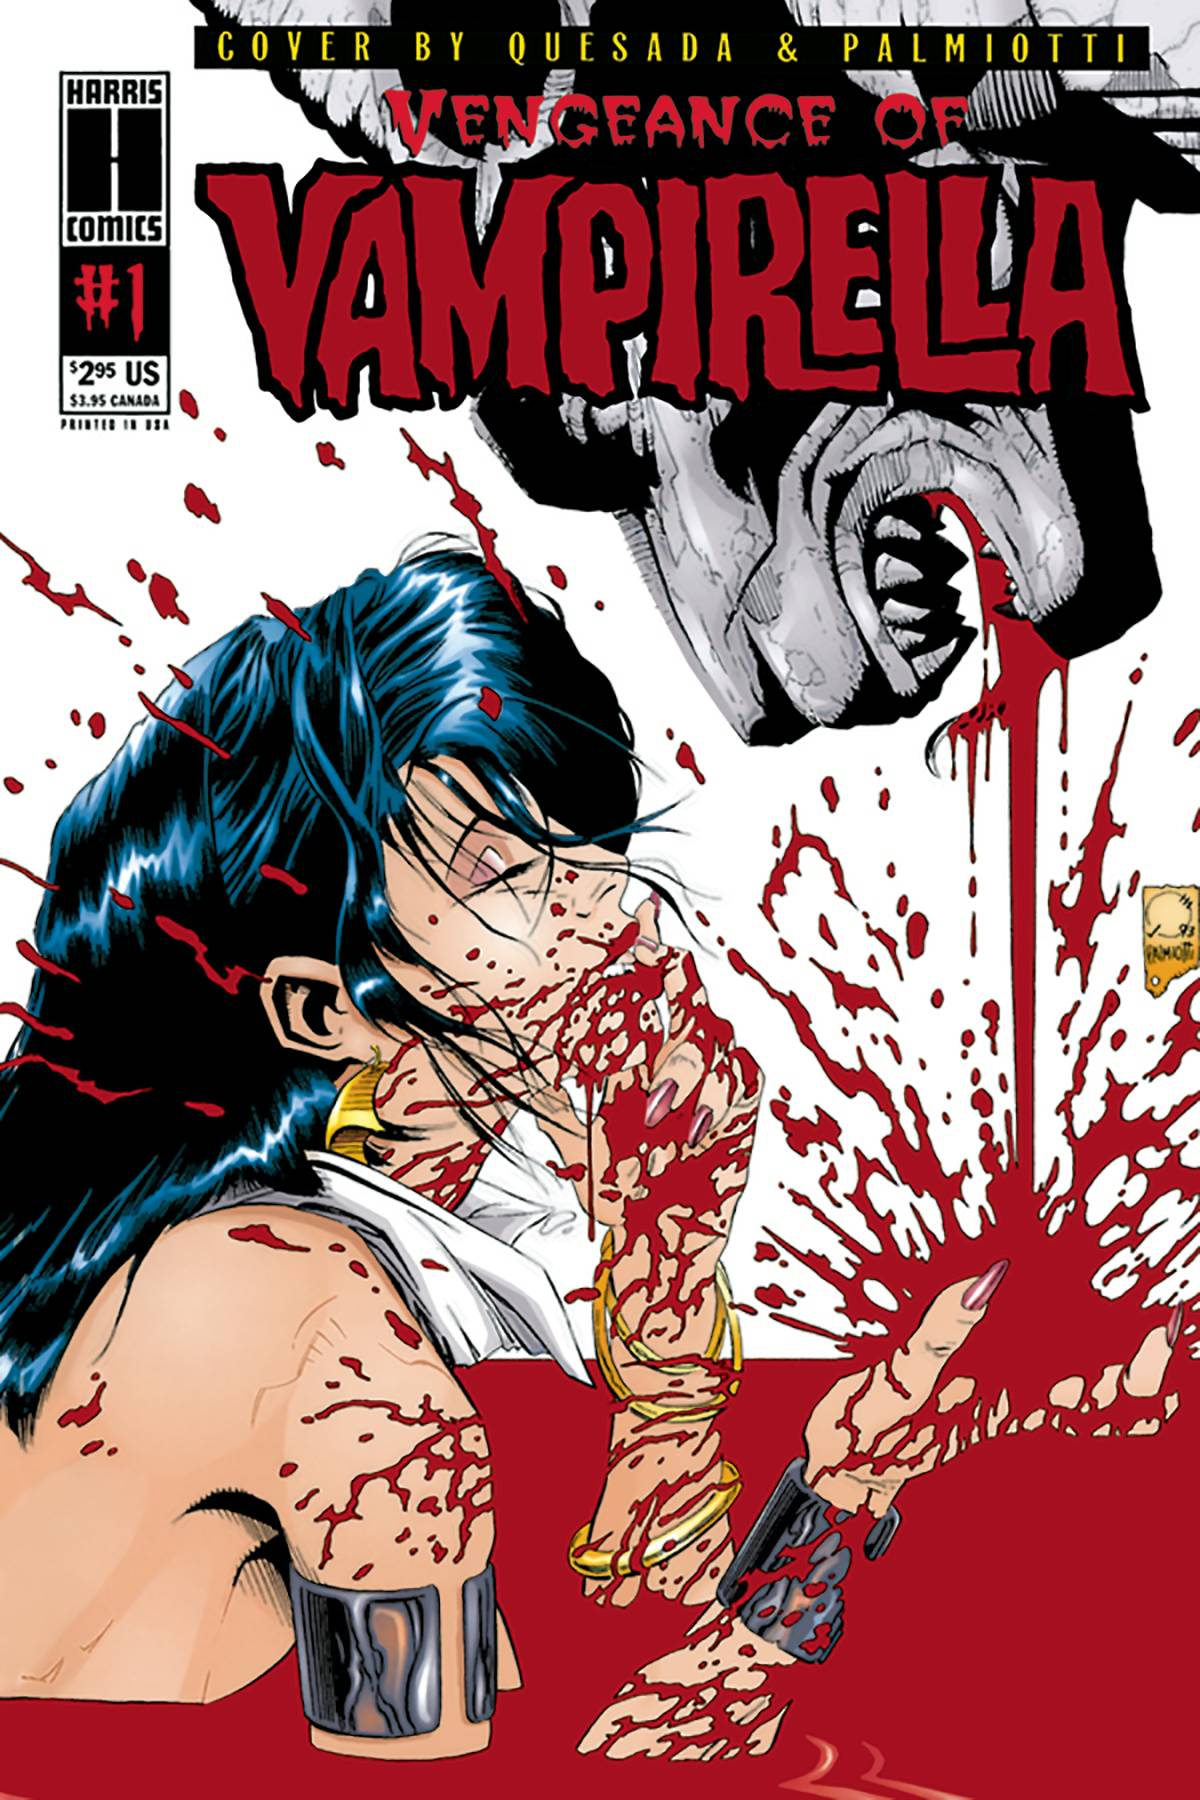 VENGEANCE OF VAMPIRELLA 1994 1 LTD REPLICA ED.jpg